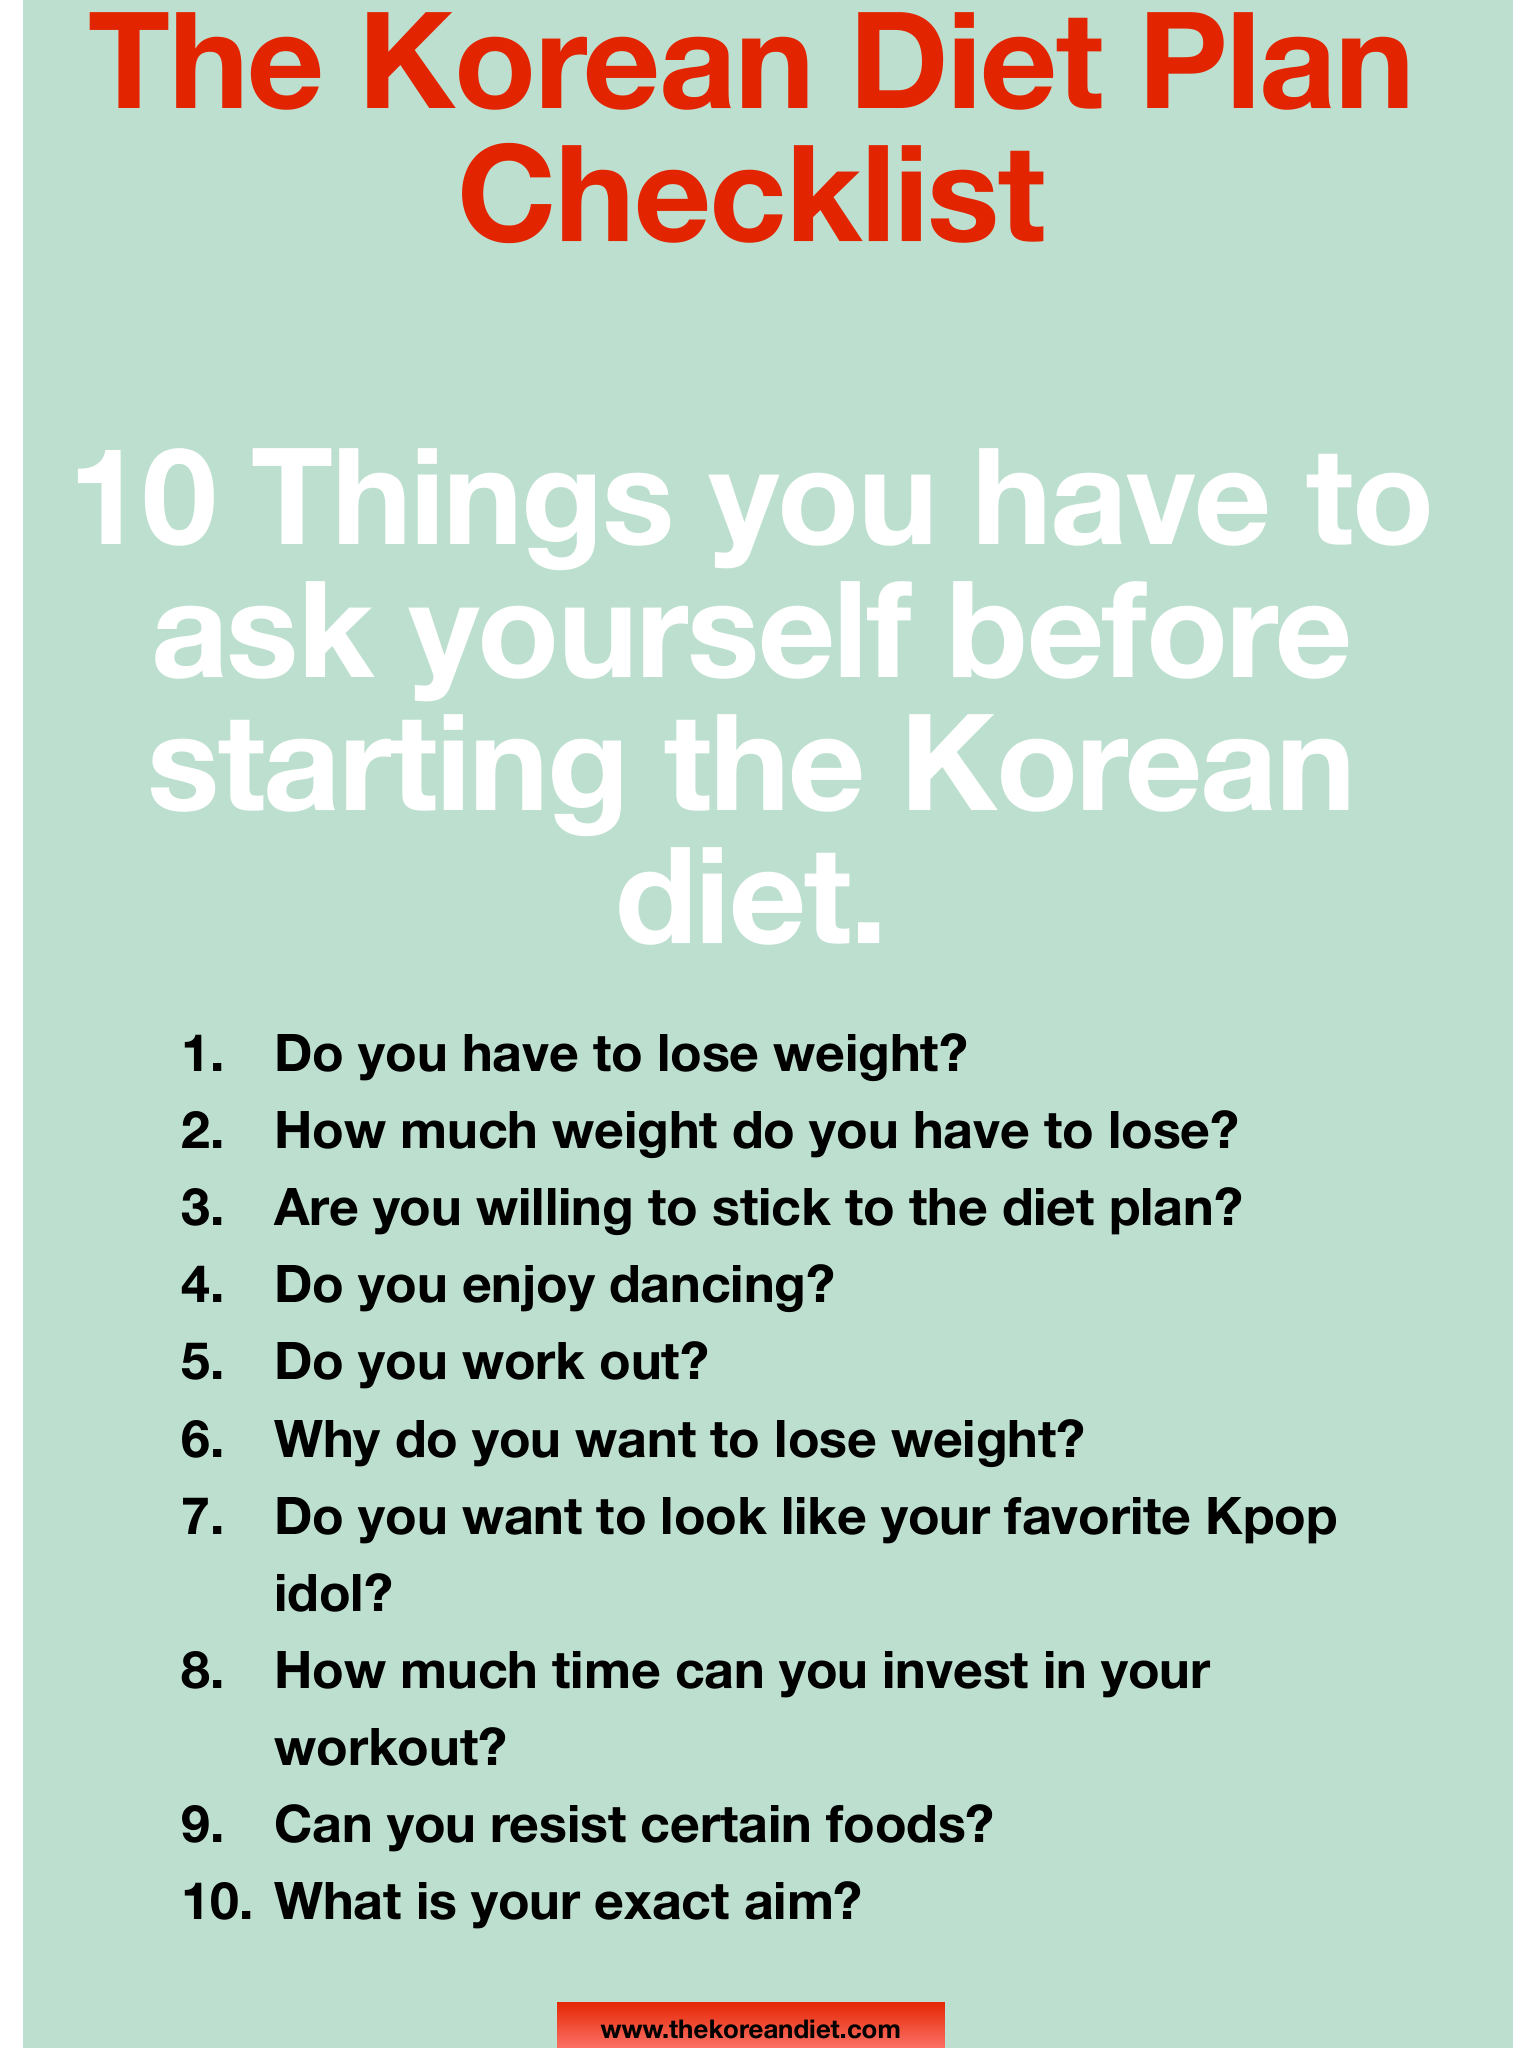 Image Result For Kpop Idol Diets Learnabouttennis Korean Diet Kpop Diet Week Diet Plan